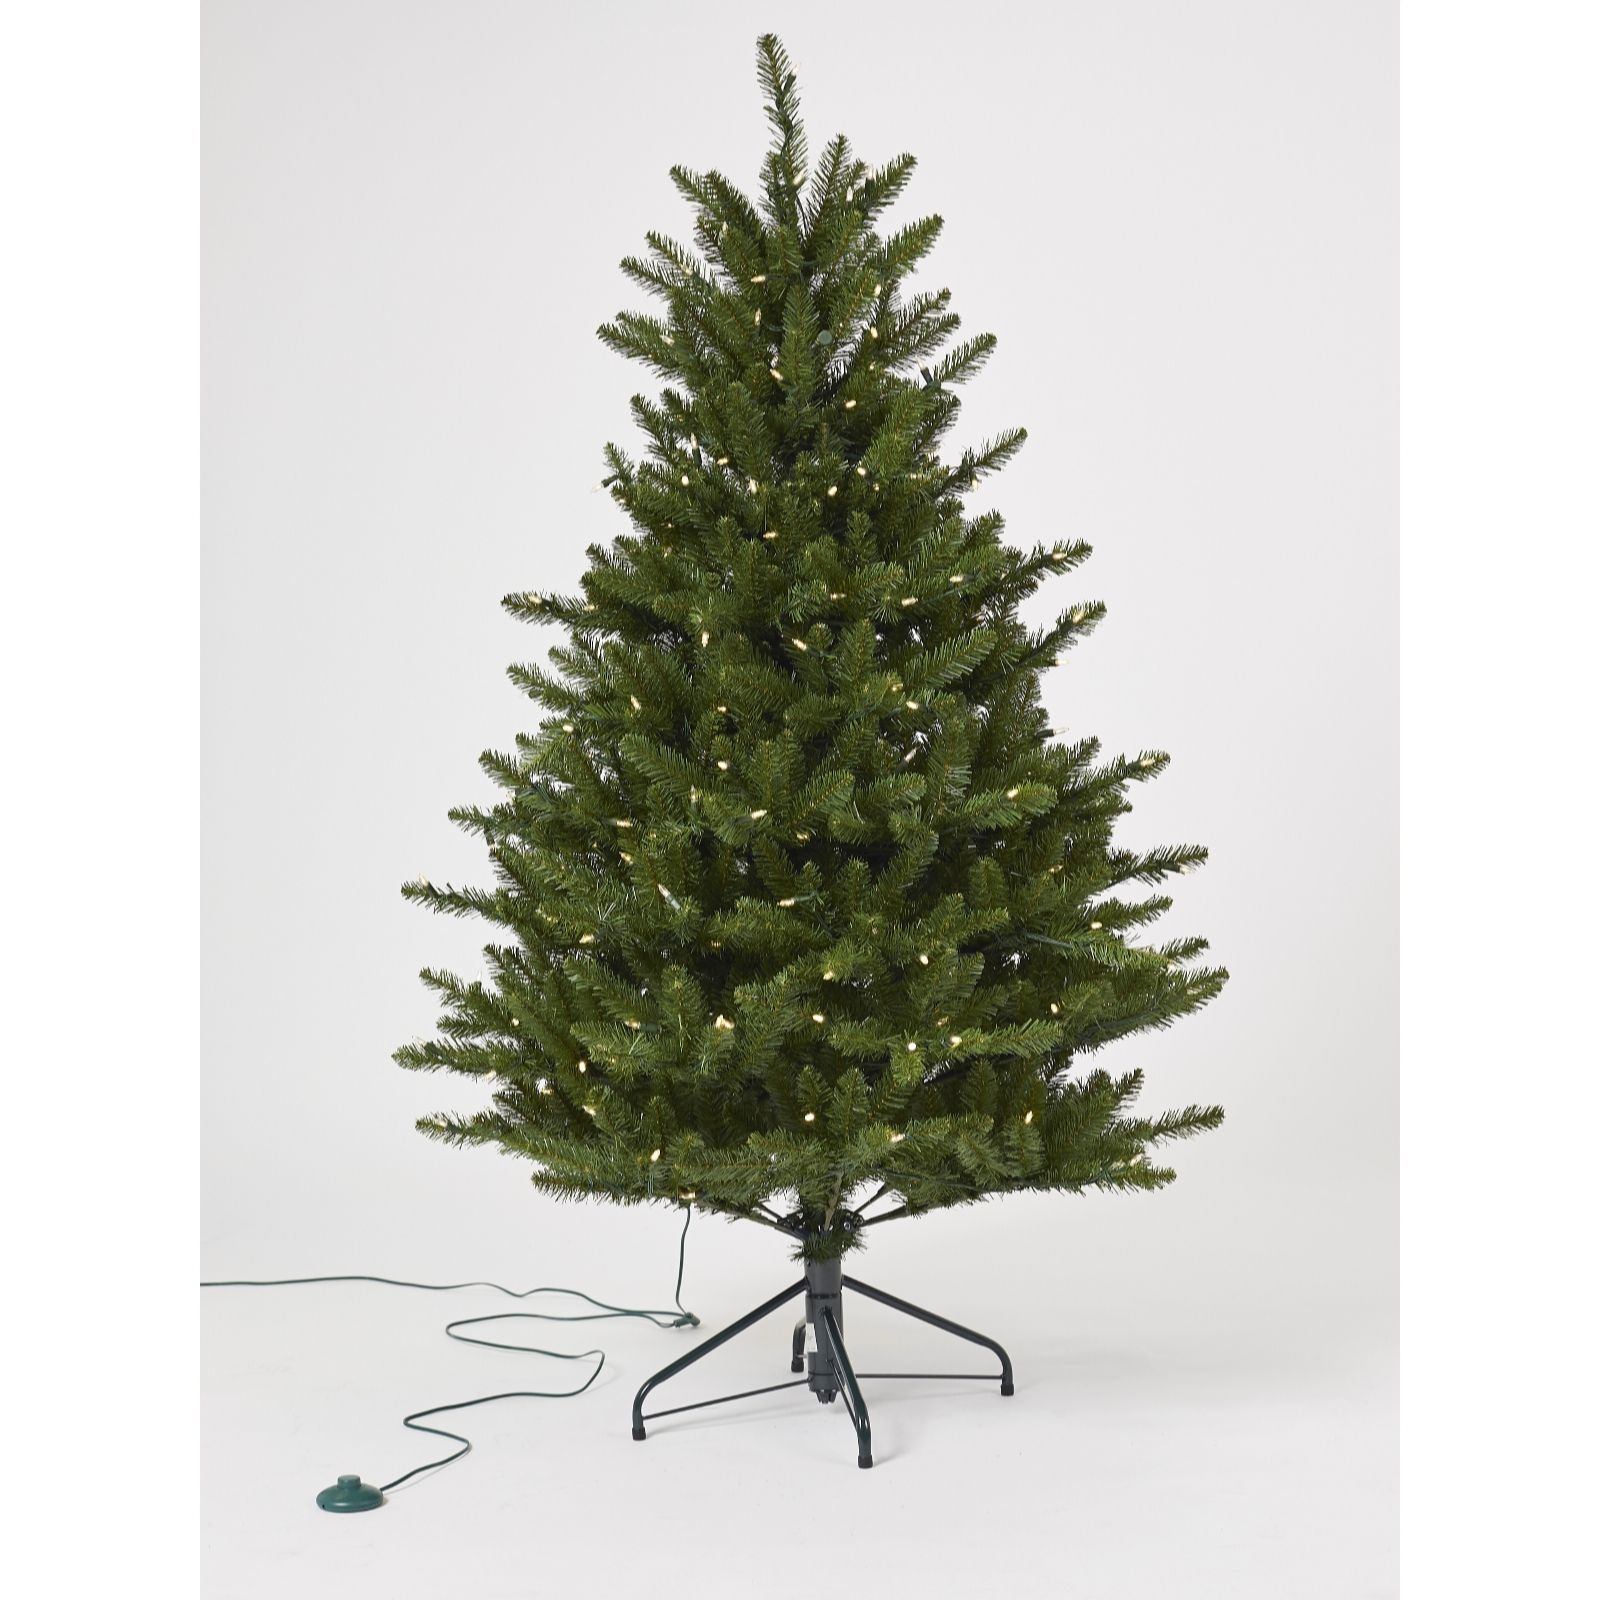 Qvc Christmas Trees.Santa S Best 5ft Fraiser Fir Christmas Tree With 240 Warm White Lights Qvc Uk